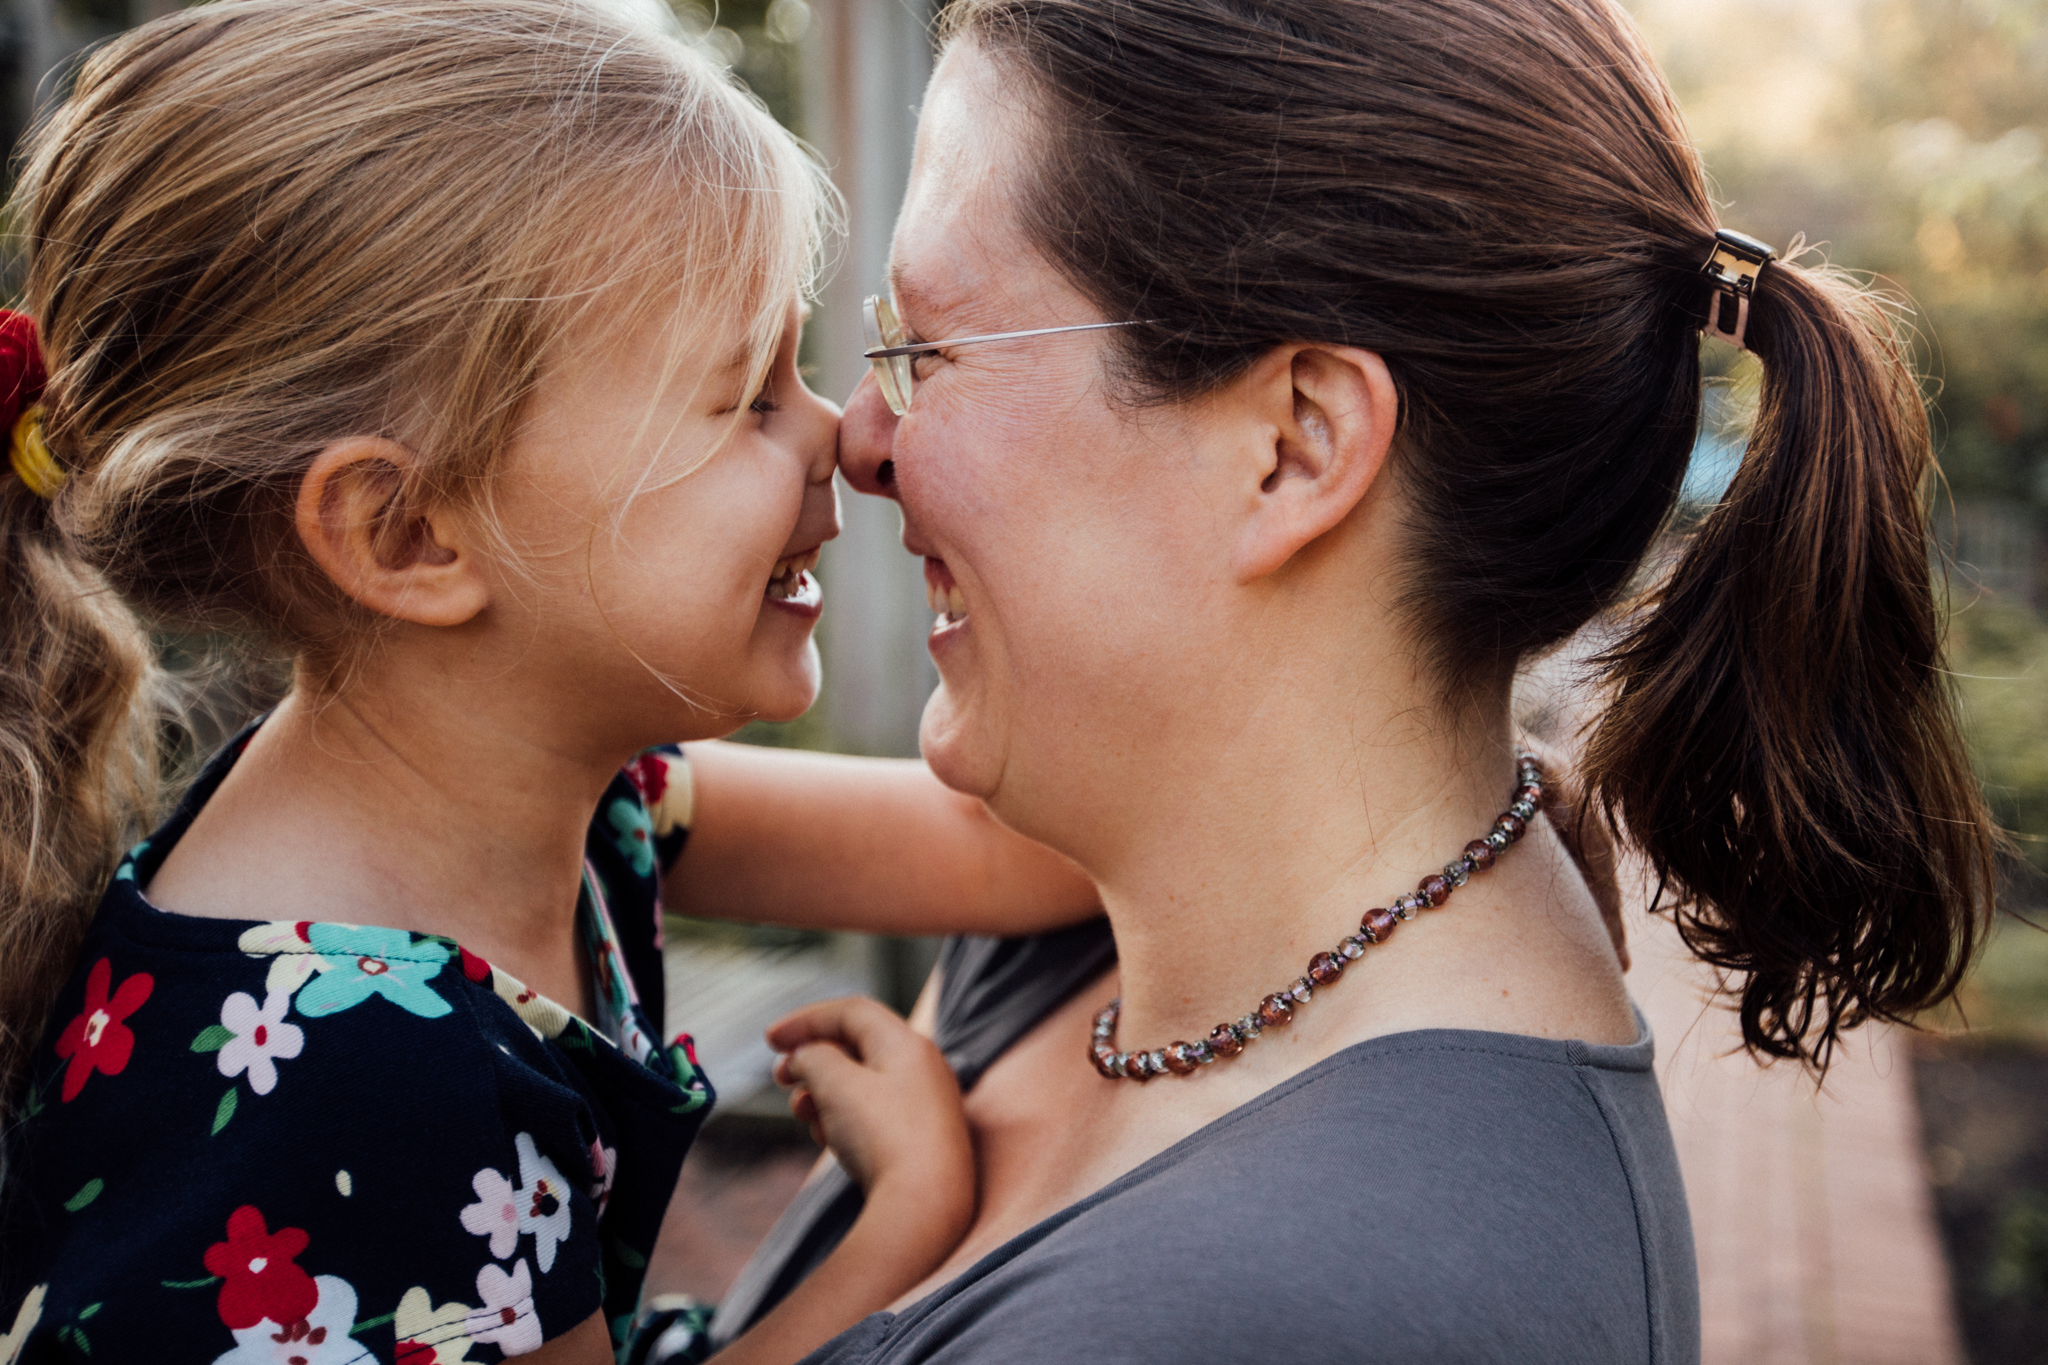 Mom and daughter rub noses by Madison and Huntsville Alabama family photographer Rachel K Photo